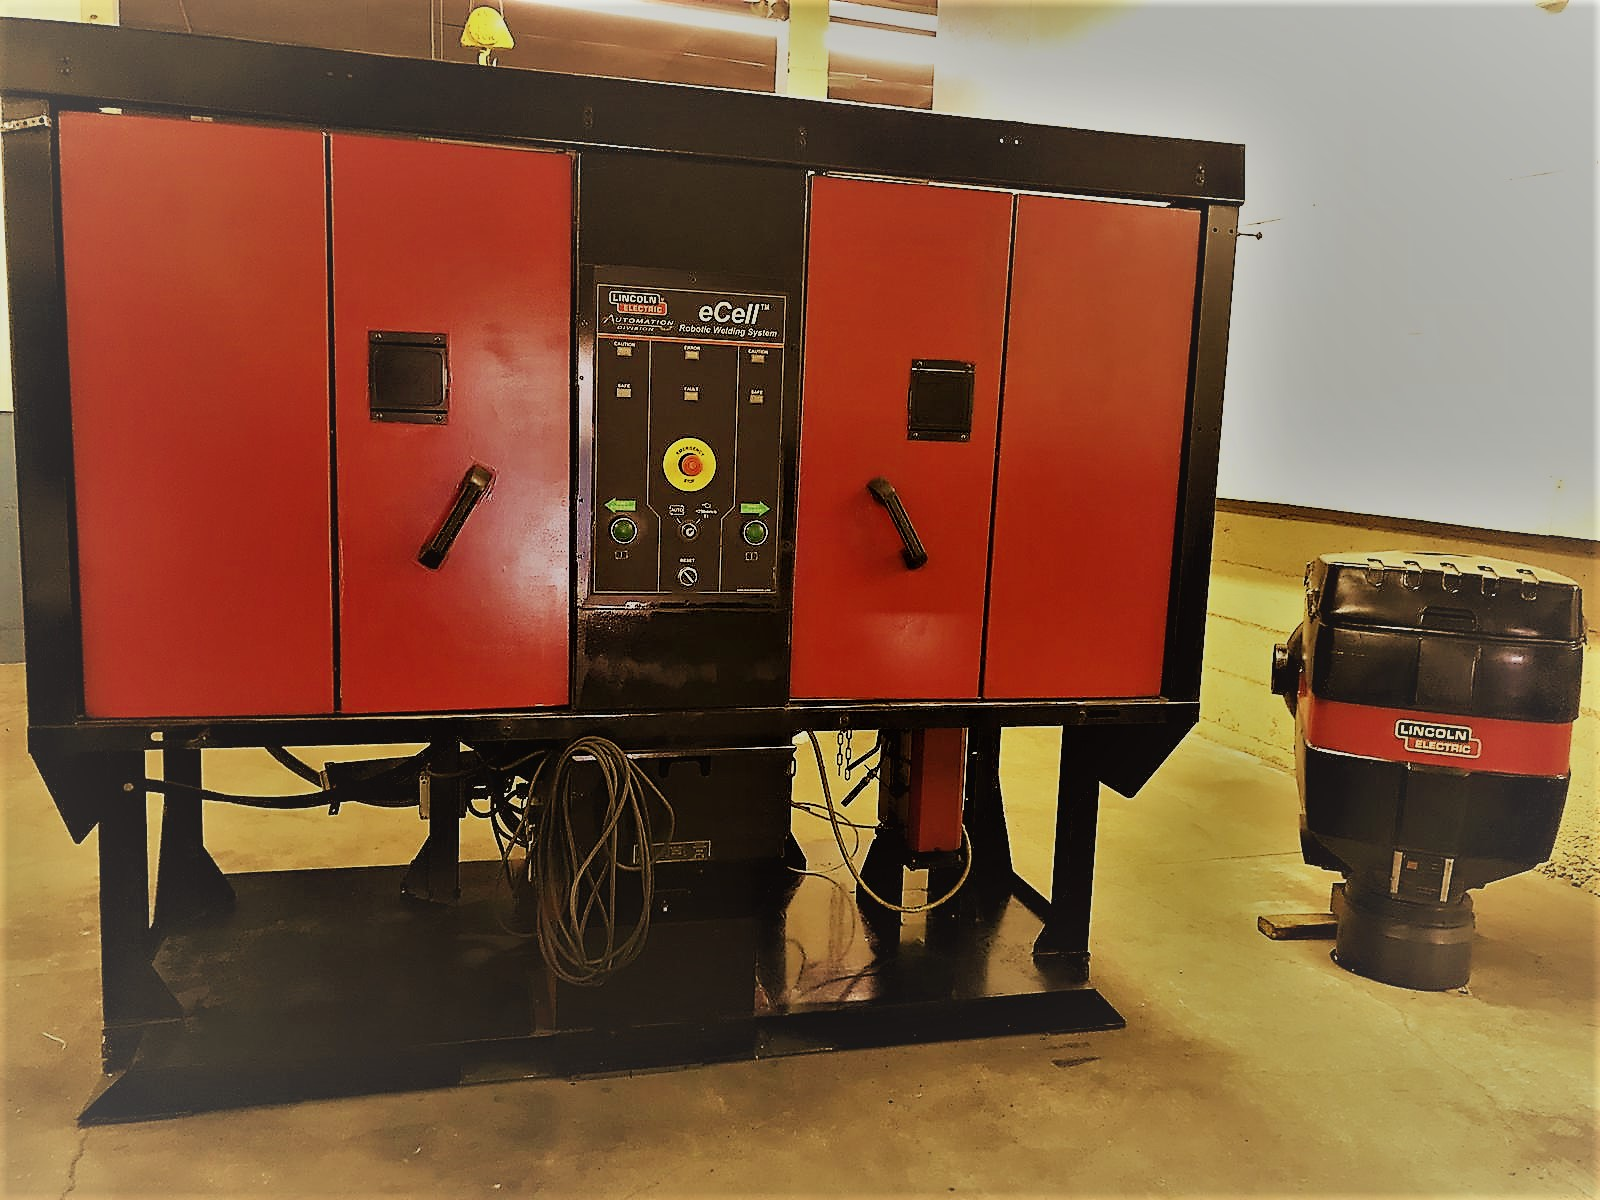 Lincoln Electric  Robotic eCell | Dual Position Welding Workcell